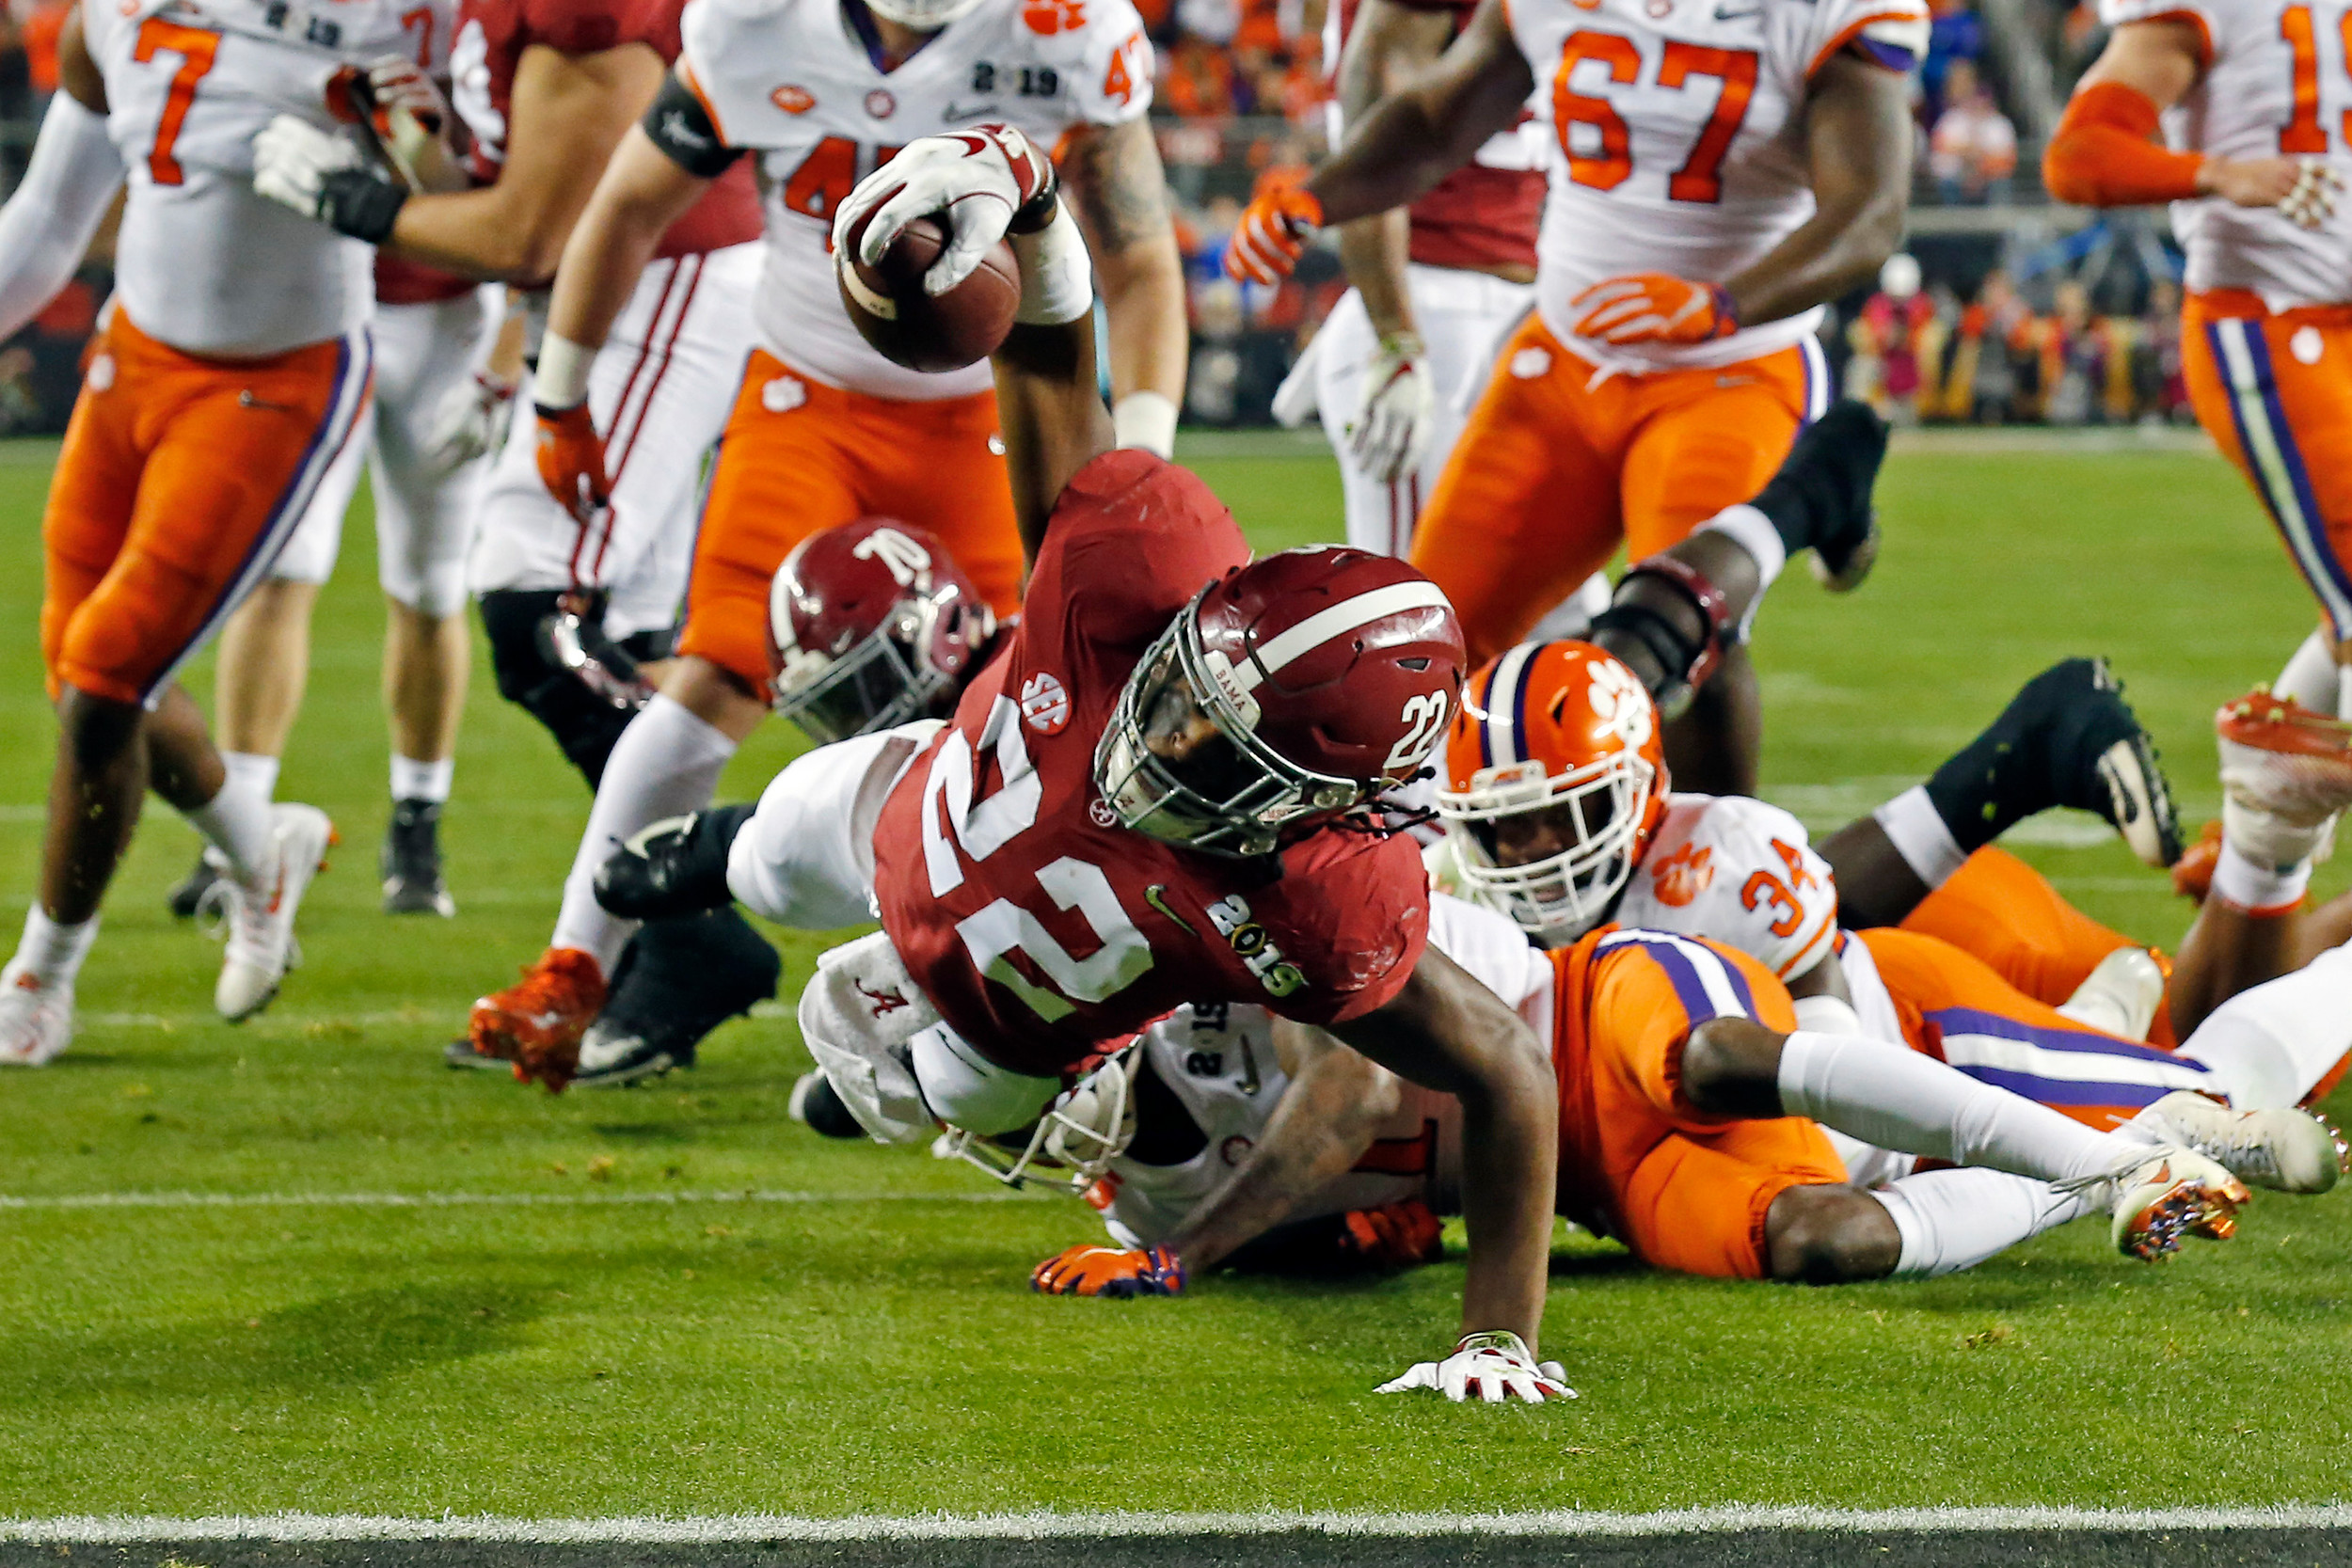 during the NCAA college football national championship game between Clemson University and the University of Alabama in Santa Clara, CA. Credit: Jason Clark / Daily Mountain Eagle